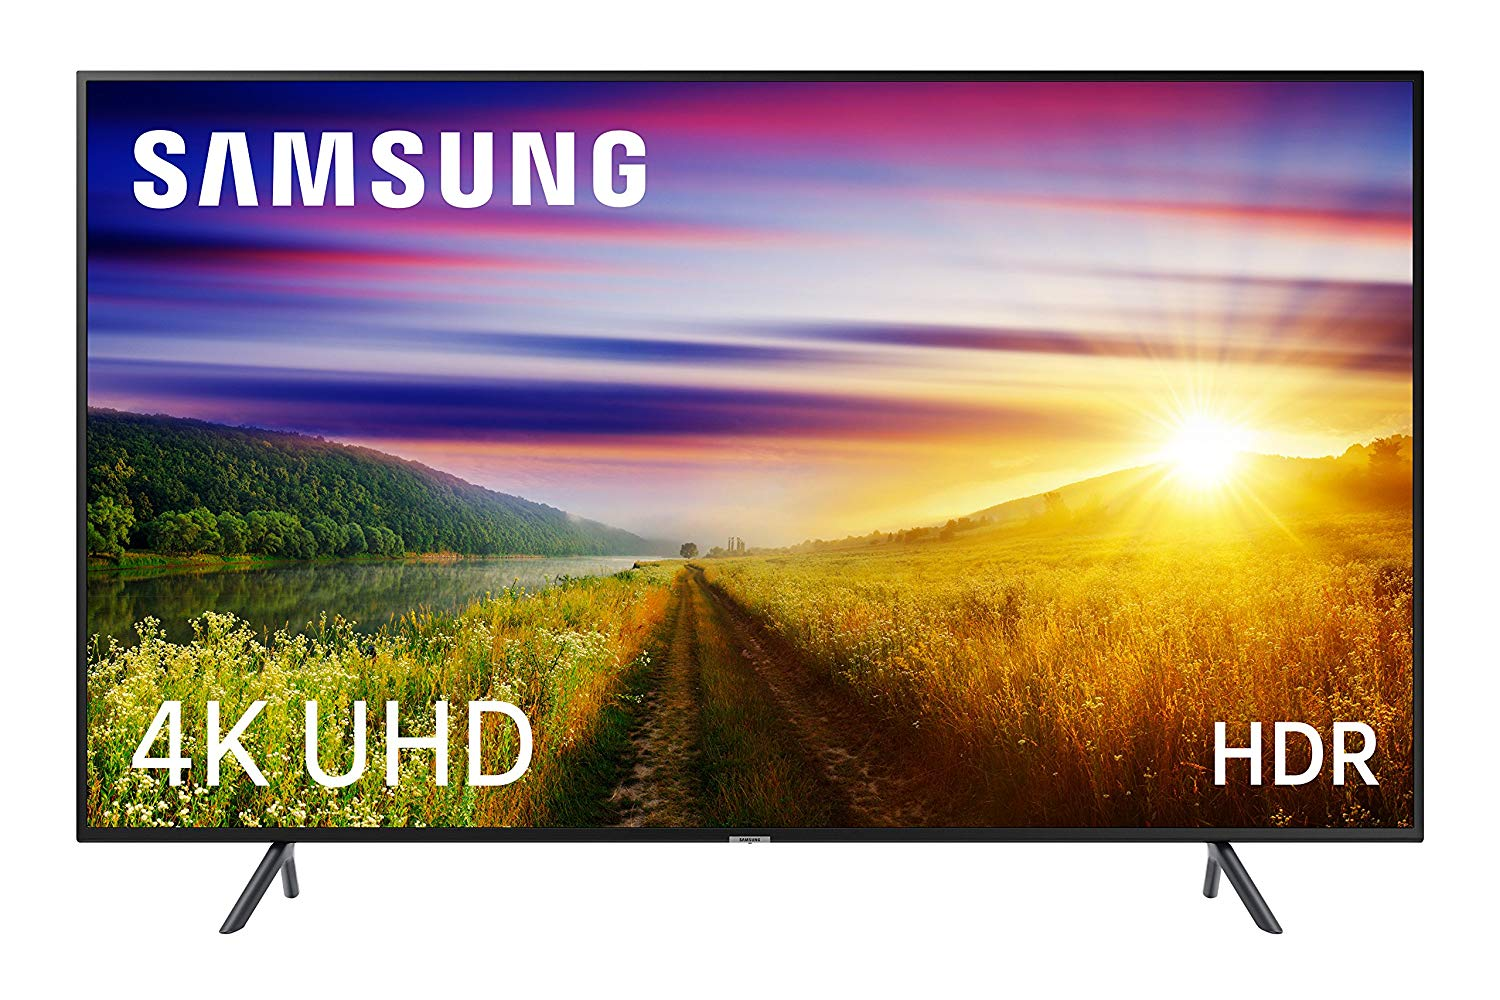 Samsung 49NU7105 - Smart TV de 49